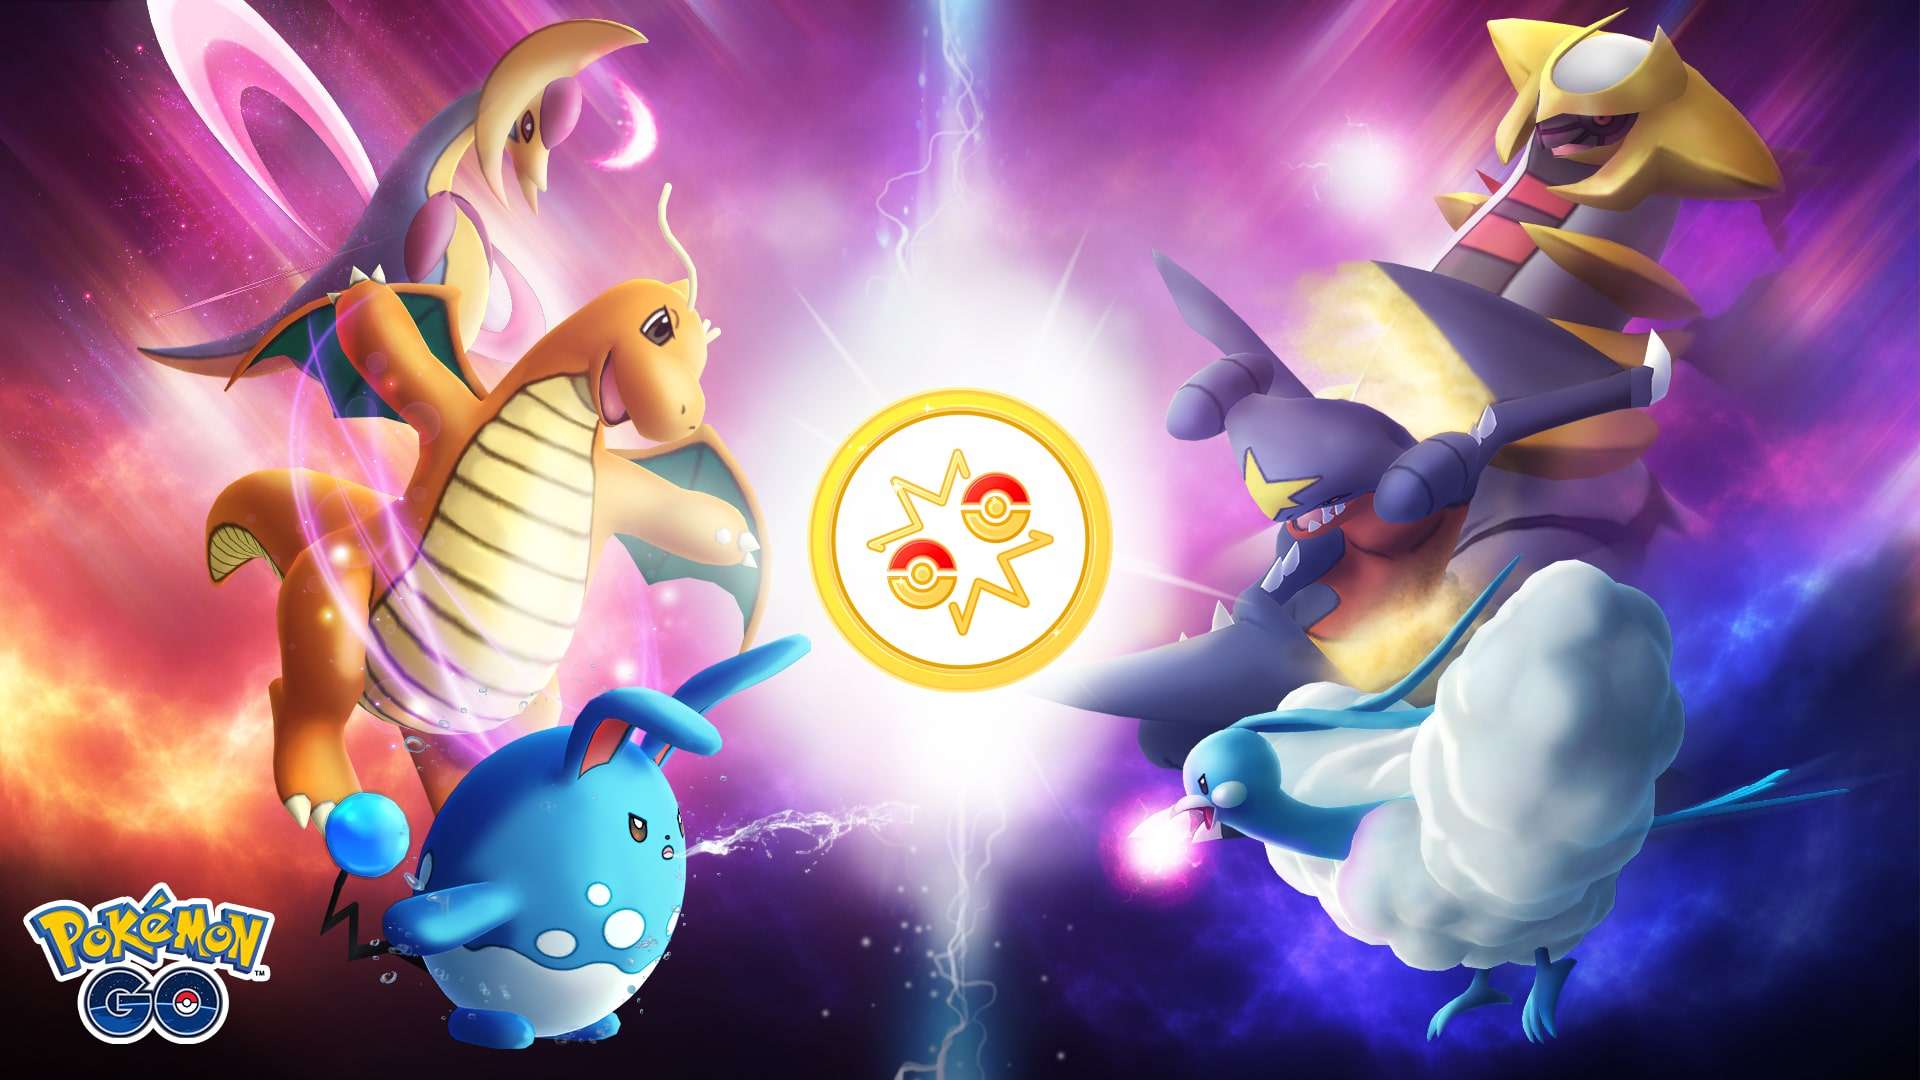 Pokemon Go : Players getting strikes & bans for no reason issue officially acknowledged